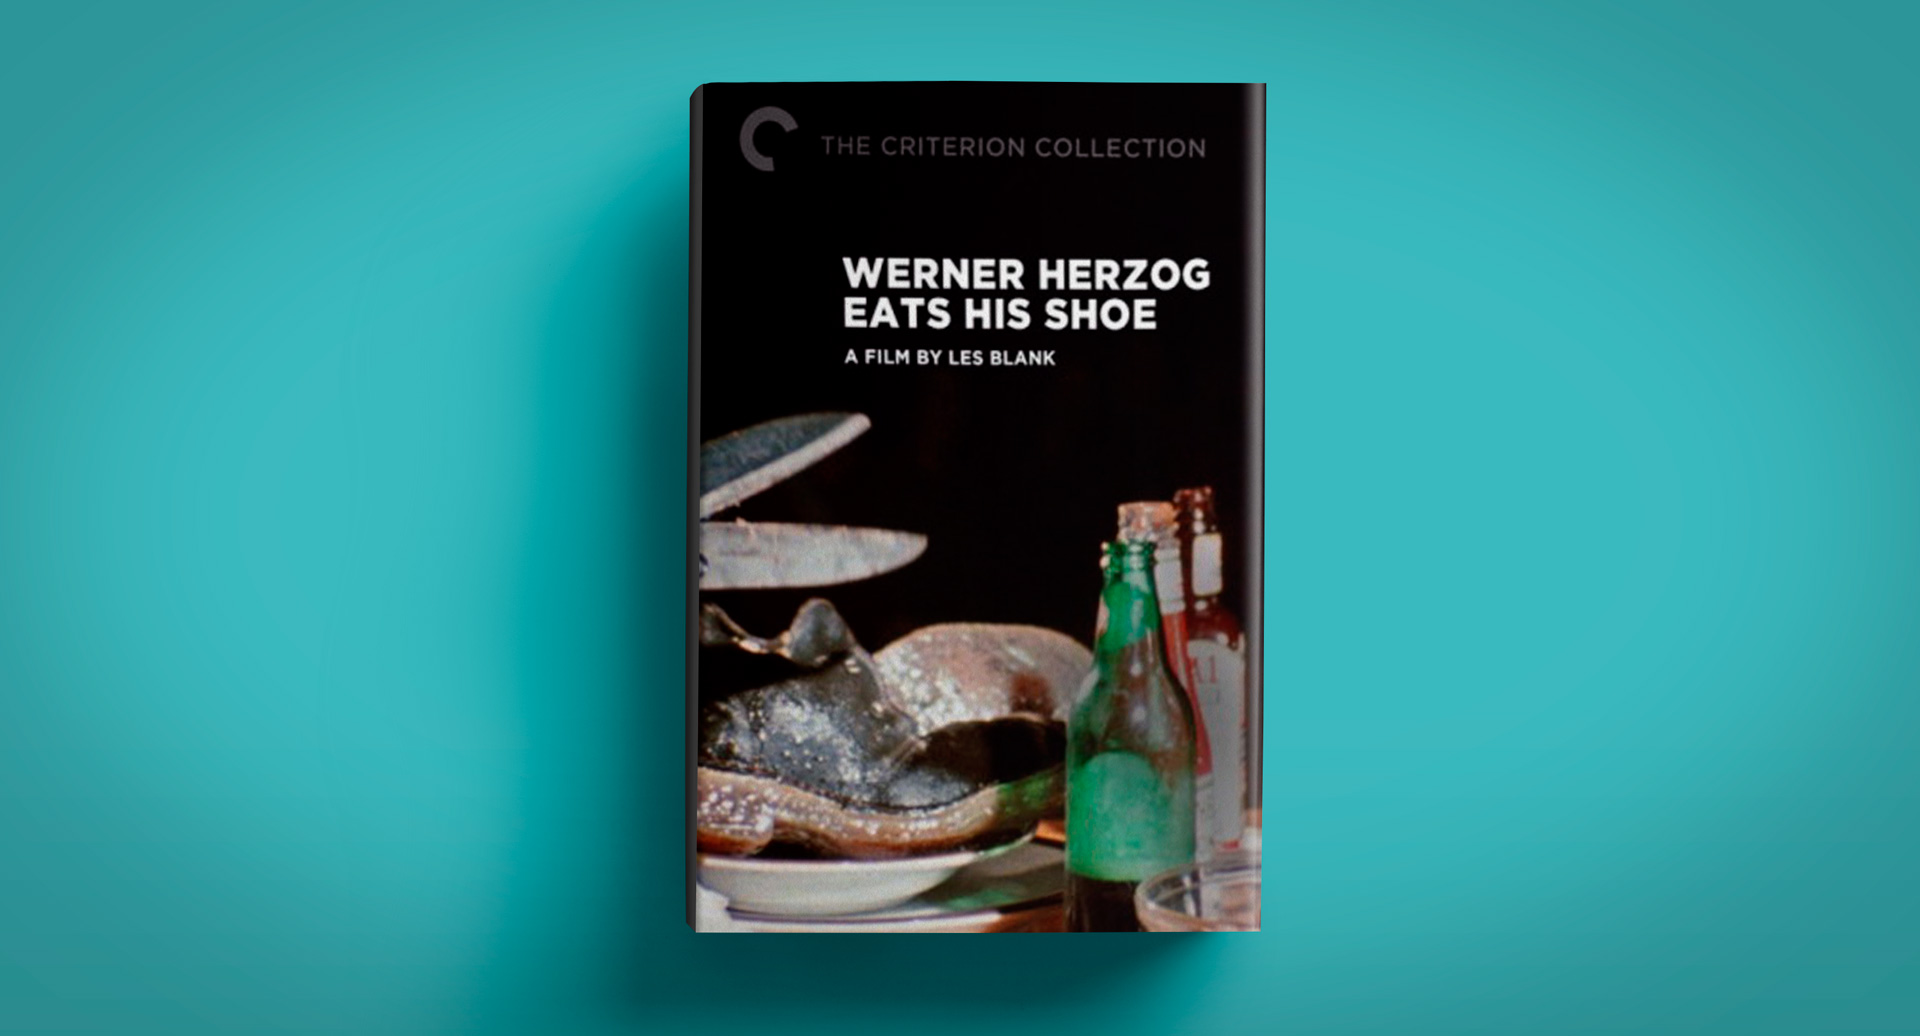 Werner Herzog lost a bet and agreed to eat his shoe. Alice Waters was the one who made it edible.